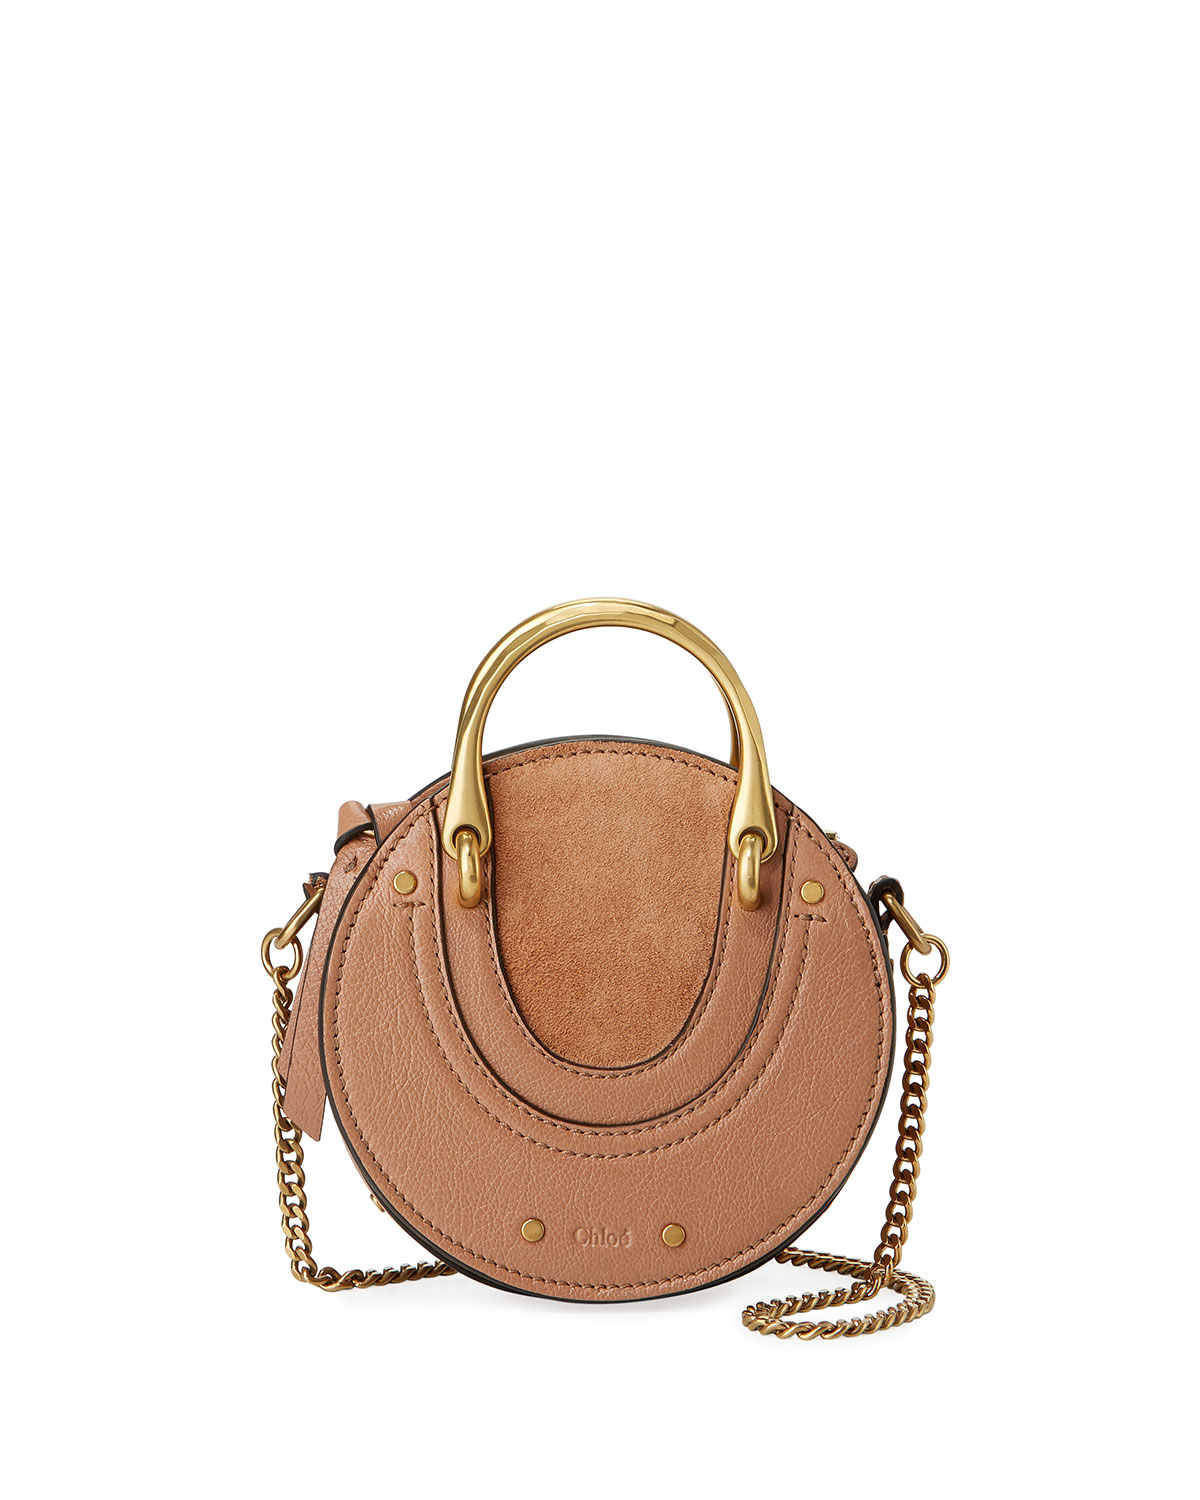 54d61d518b Chloe Pixie Mini Leather Suede Crossbody Bag